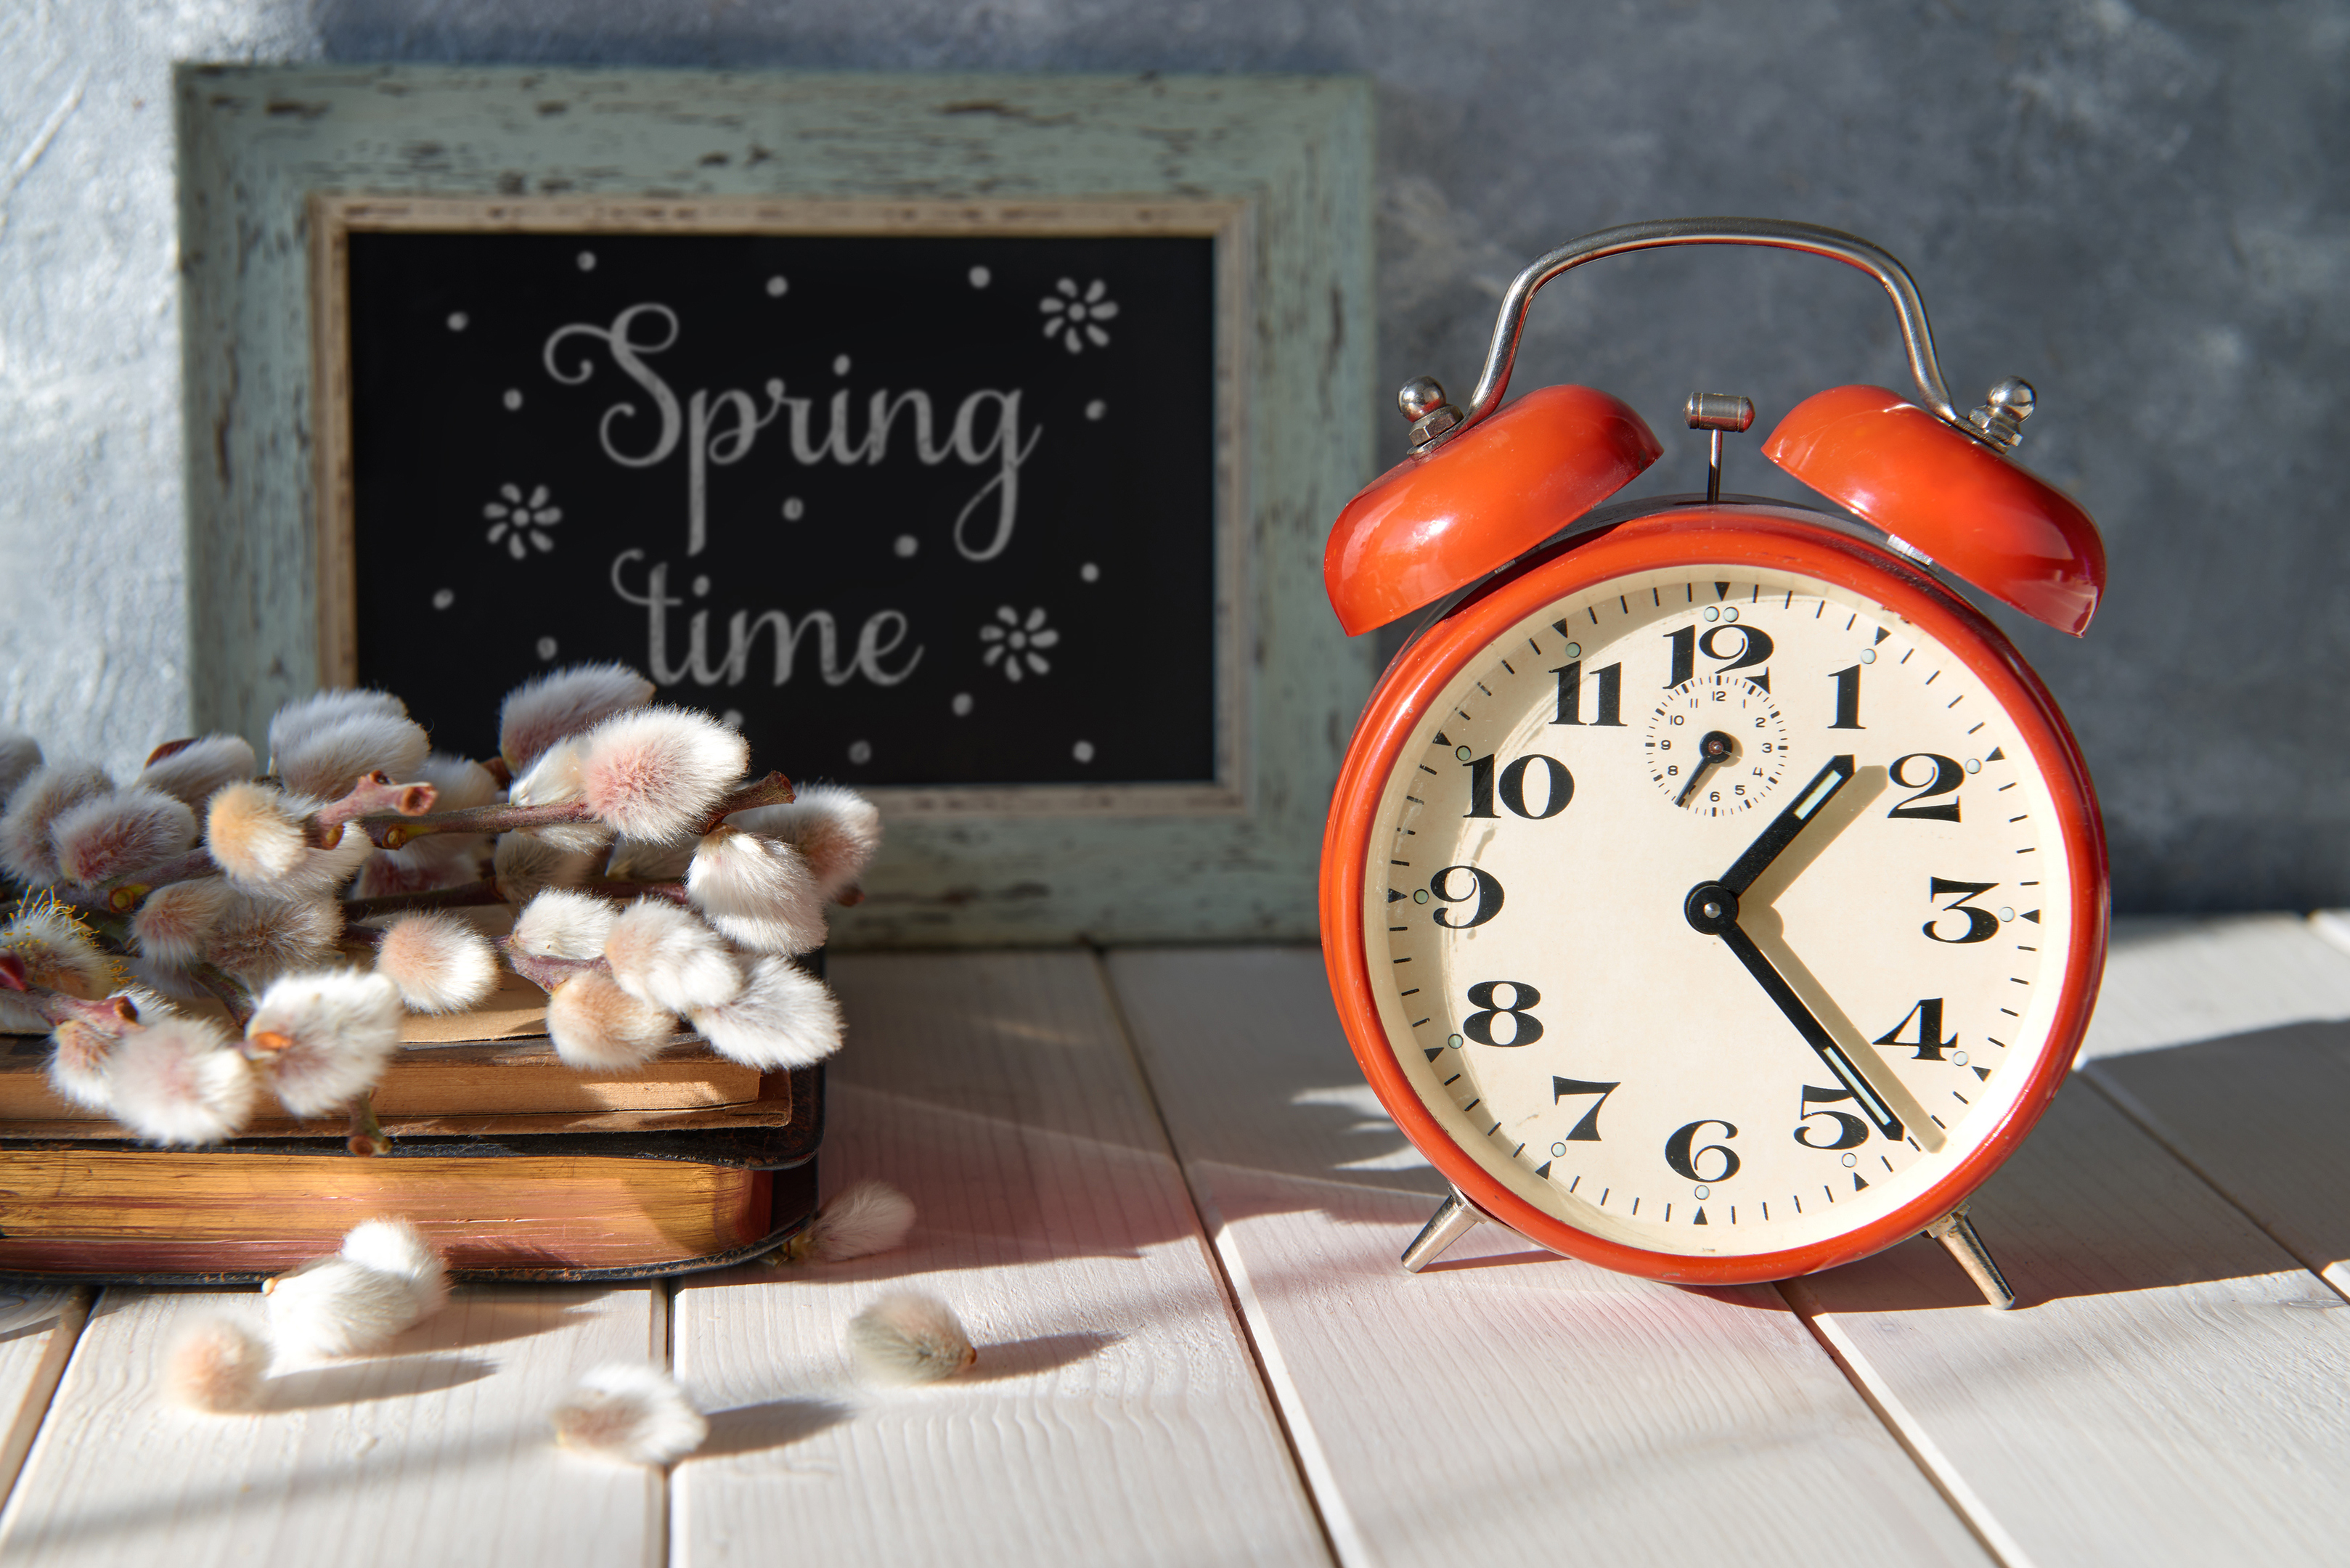 The clocks go forward on Sunday, March 25th, at 1am (Getty Images/iStock)